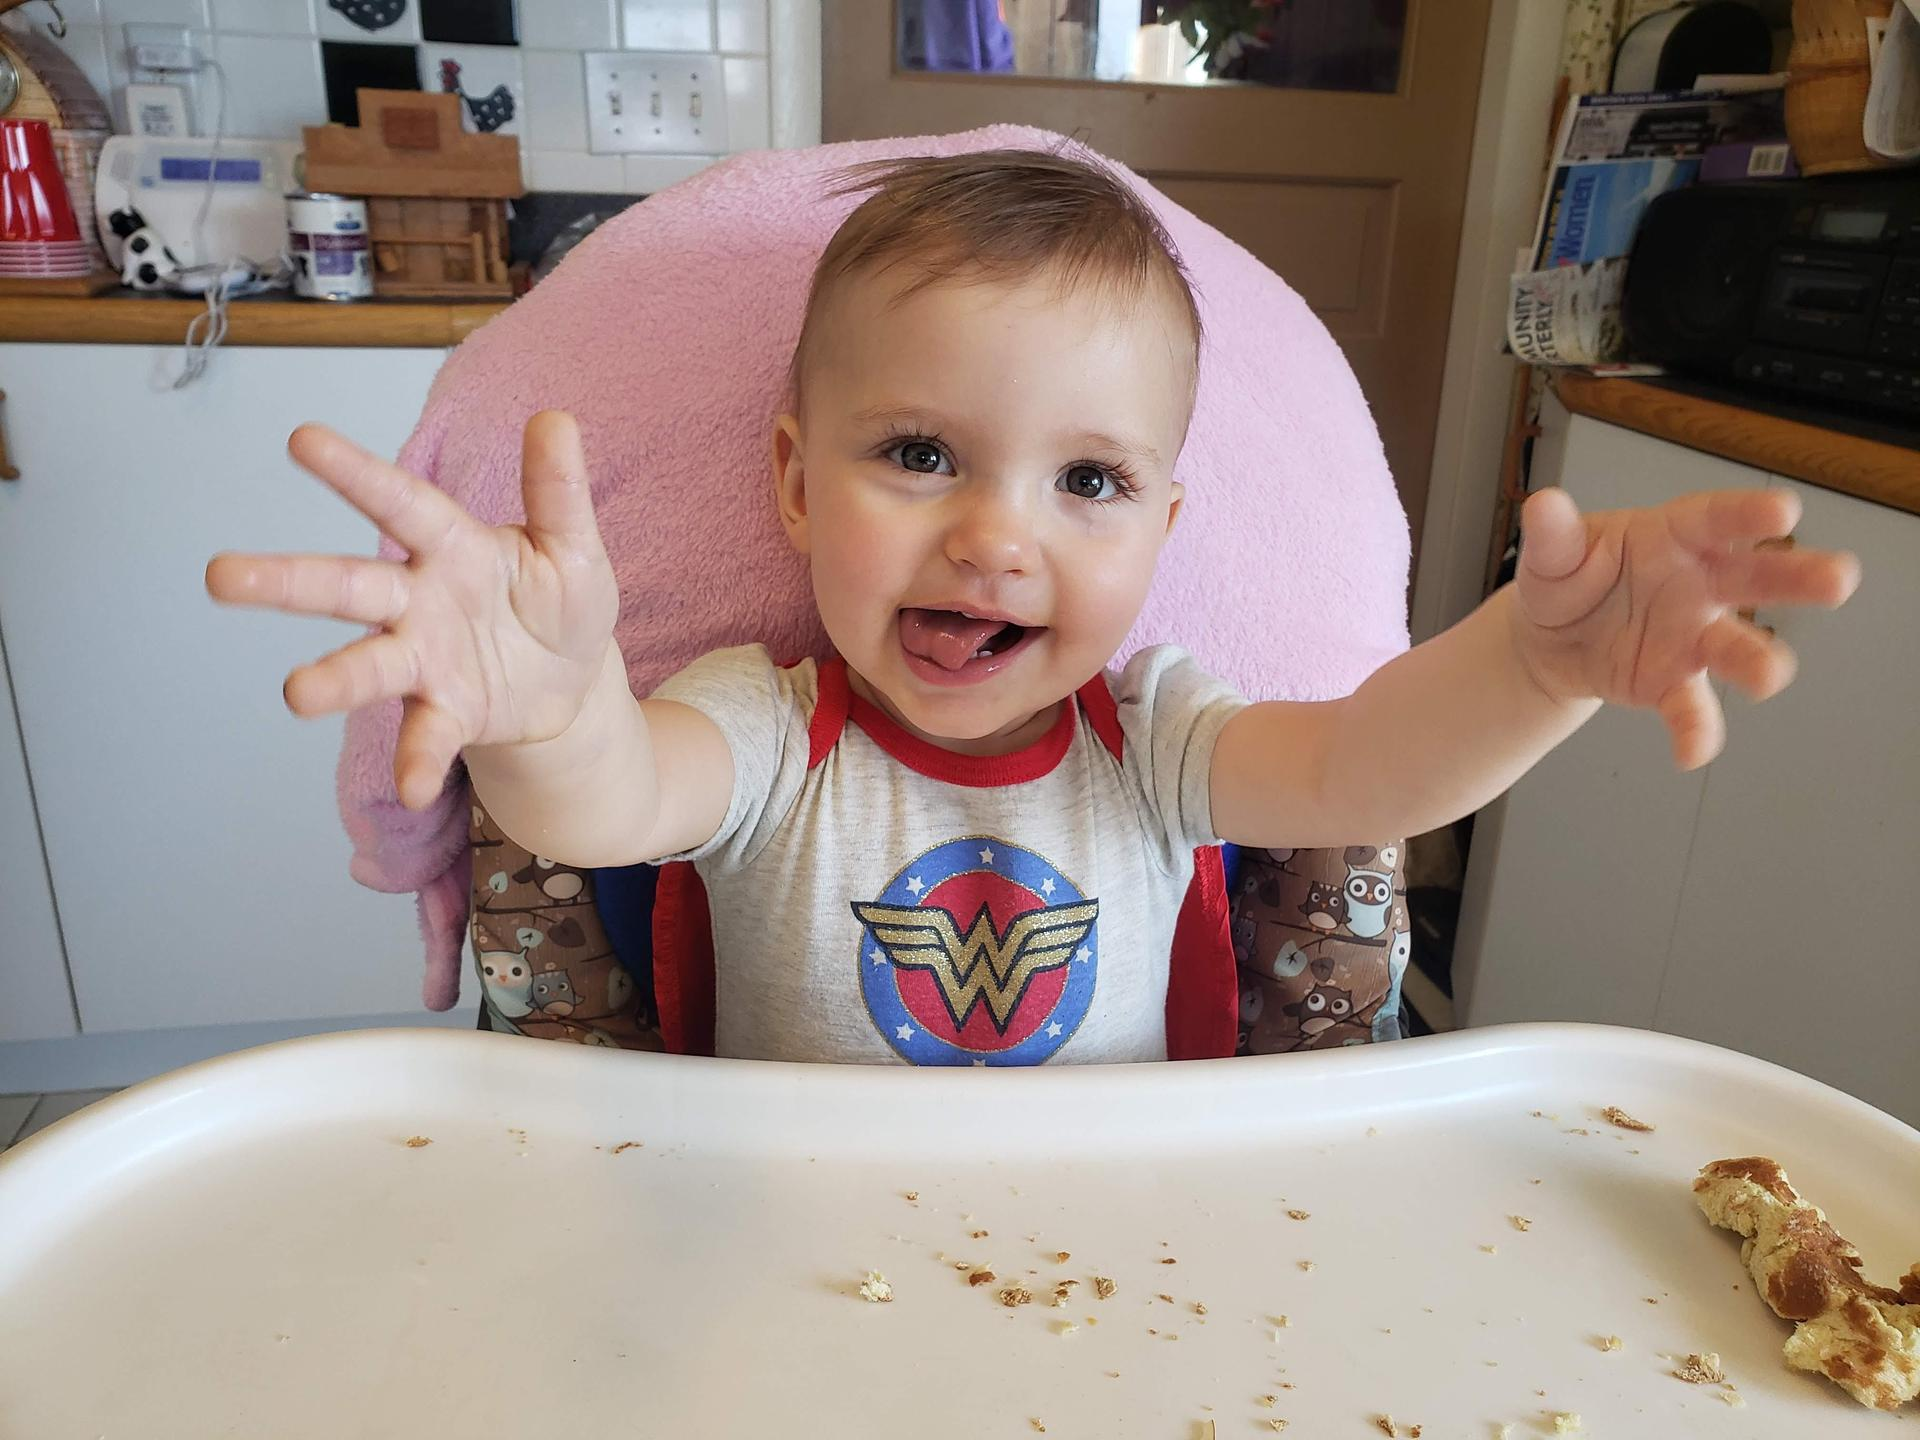 Baby in high chair smiles while sticking tongue out, wearing a Wonder Woman shirt, and holding arms out to camera